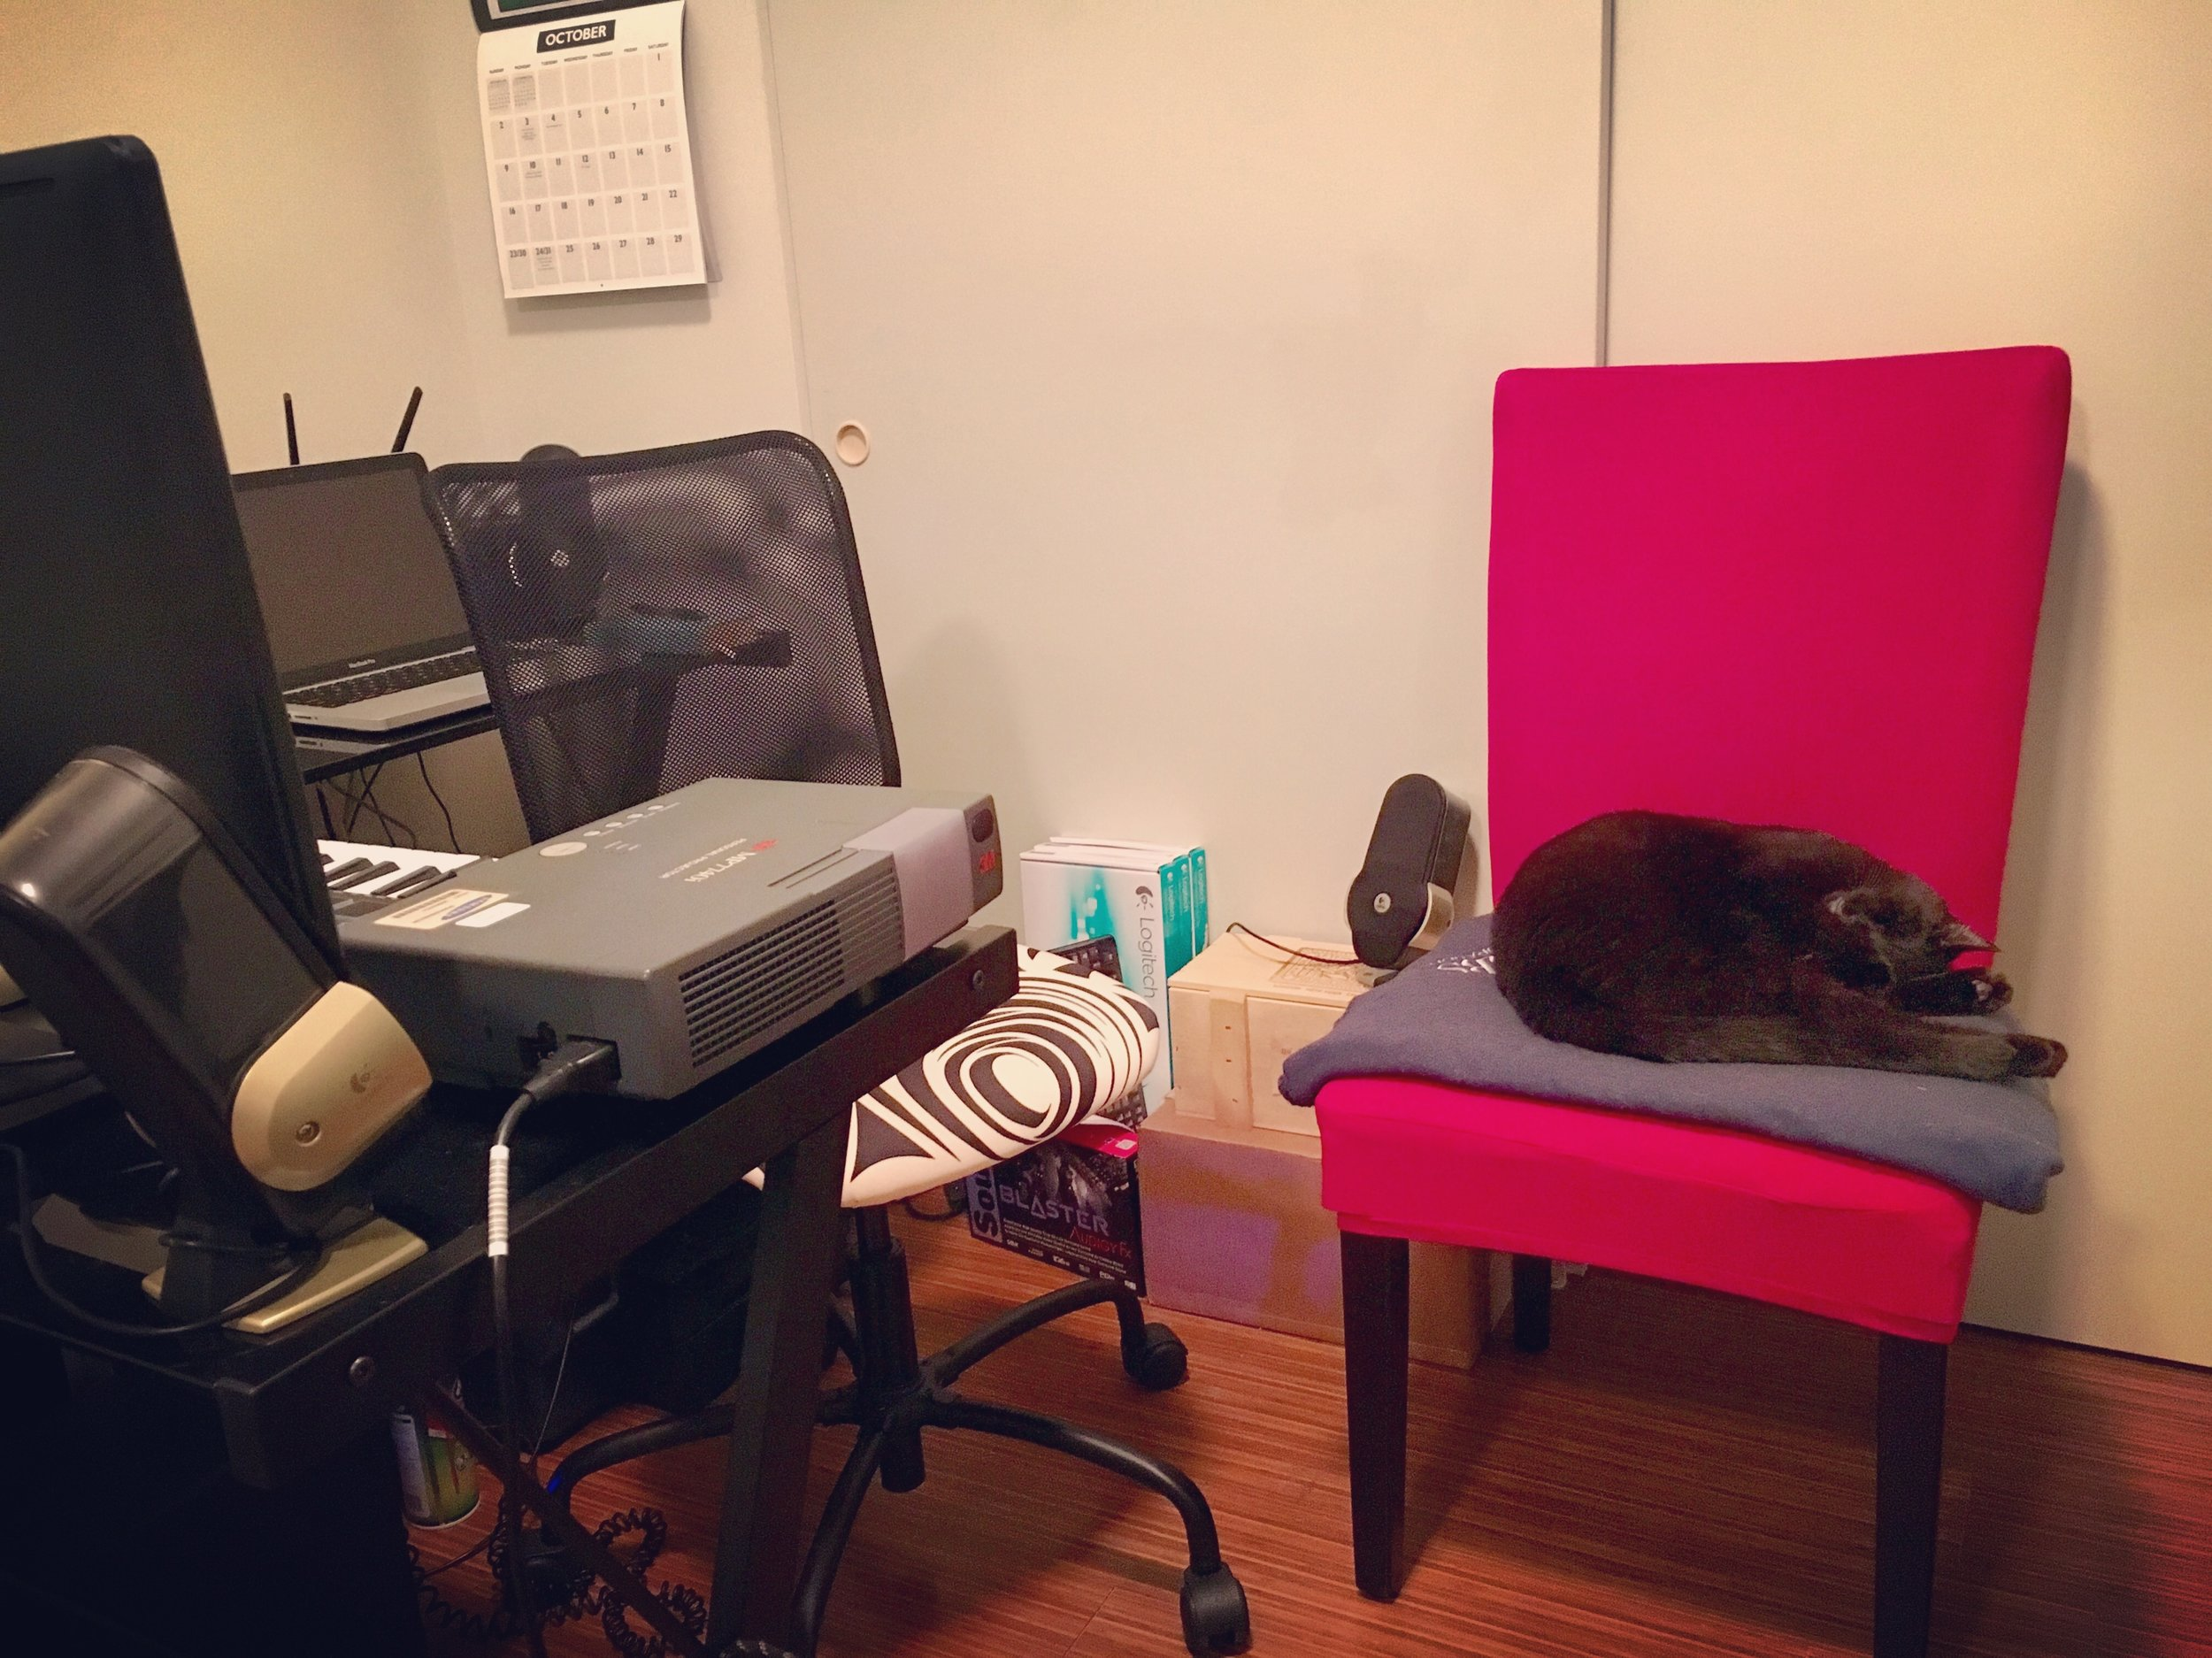 The office cats, bowie and Isaac (not pictured), help keep us calm.